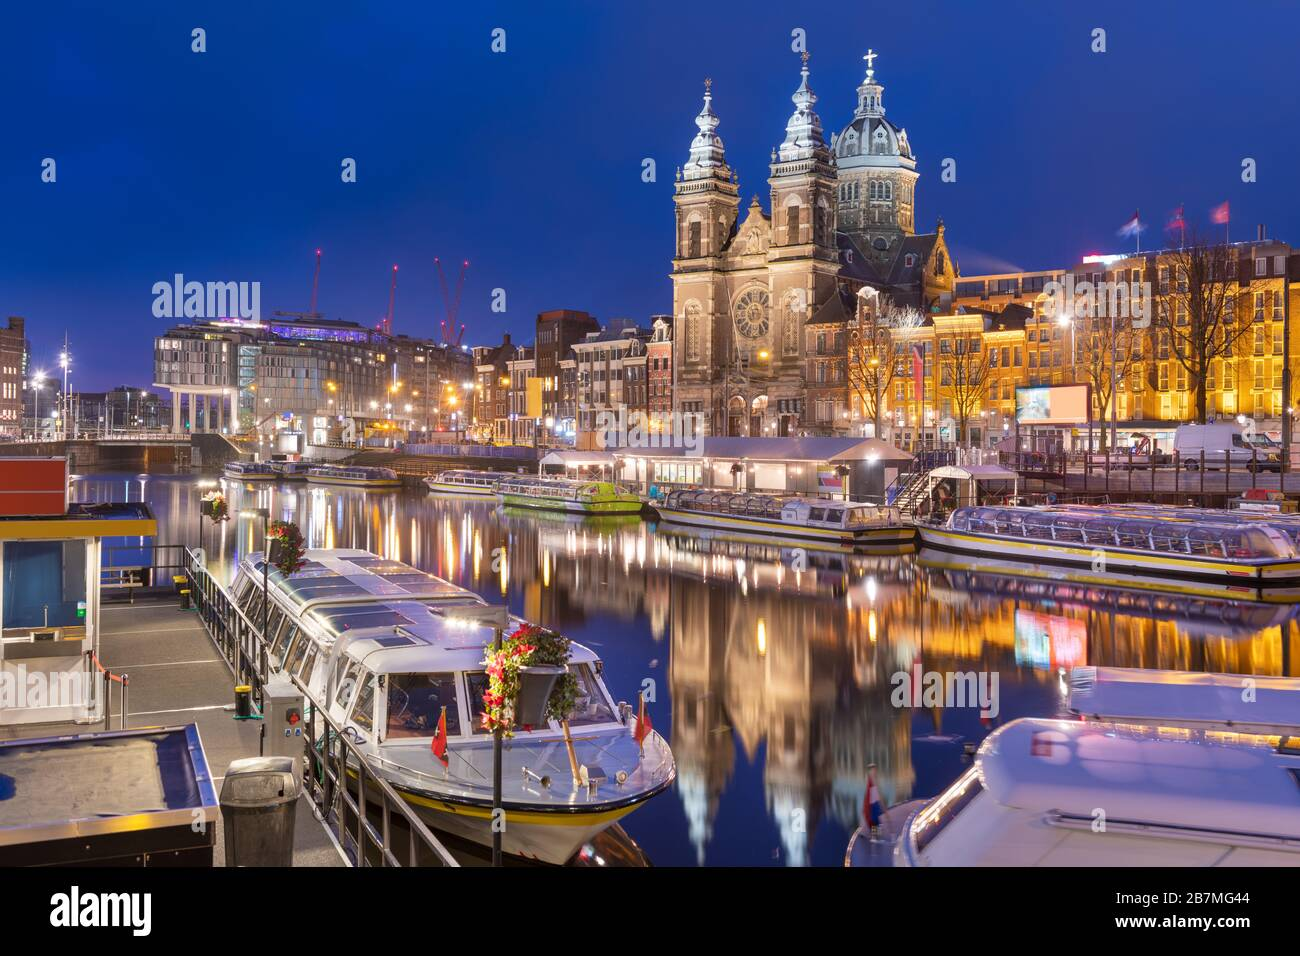 Amsterdam, Netherlands canal scene at night with Basilica of Saint Nicholas and riverboats. Stock Photo